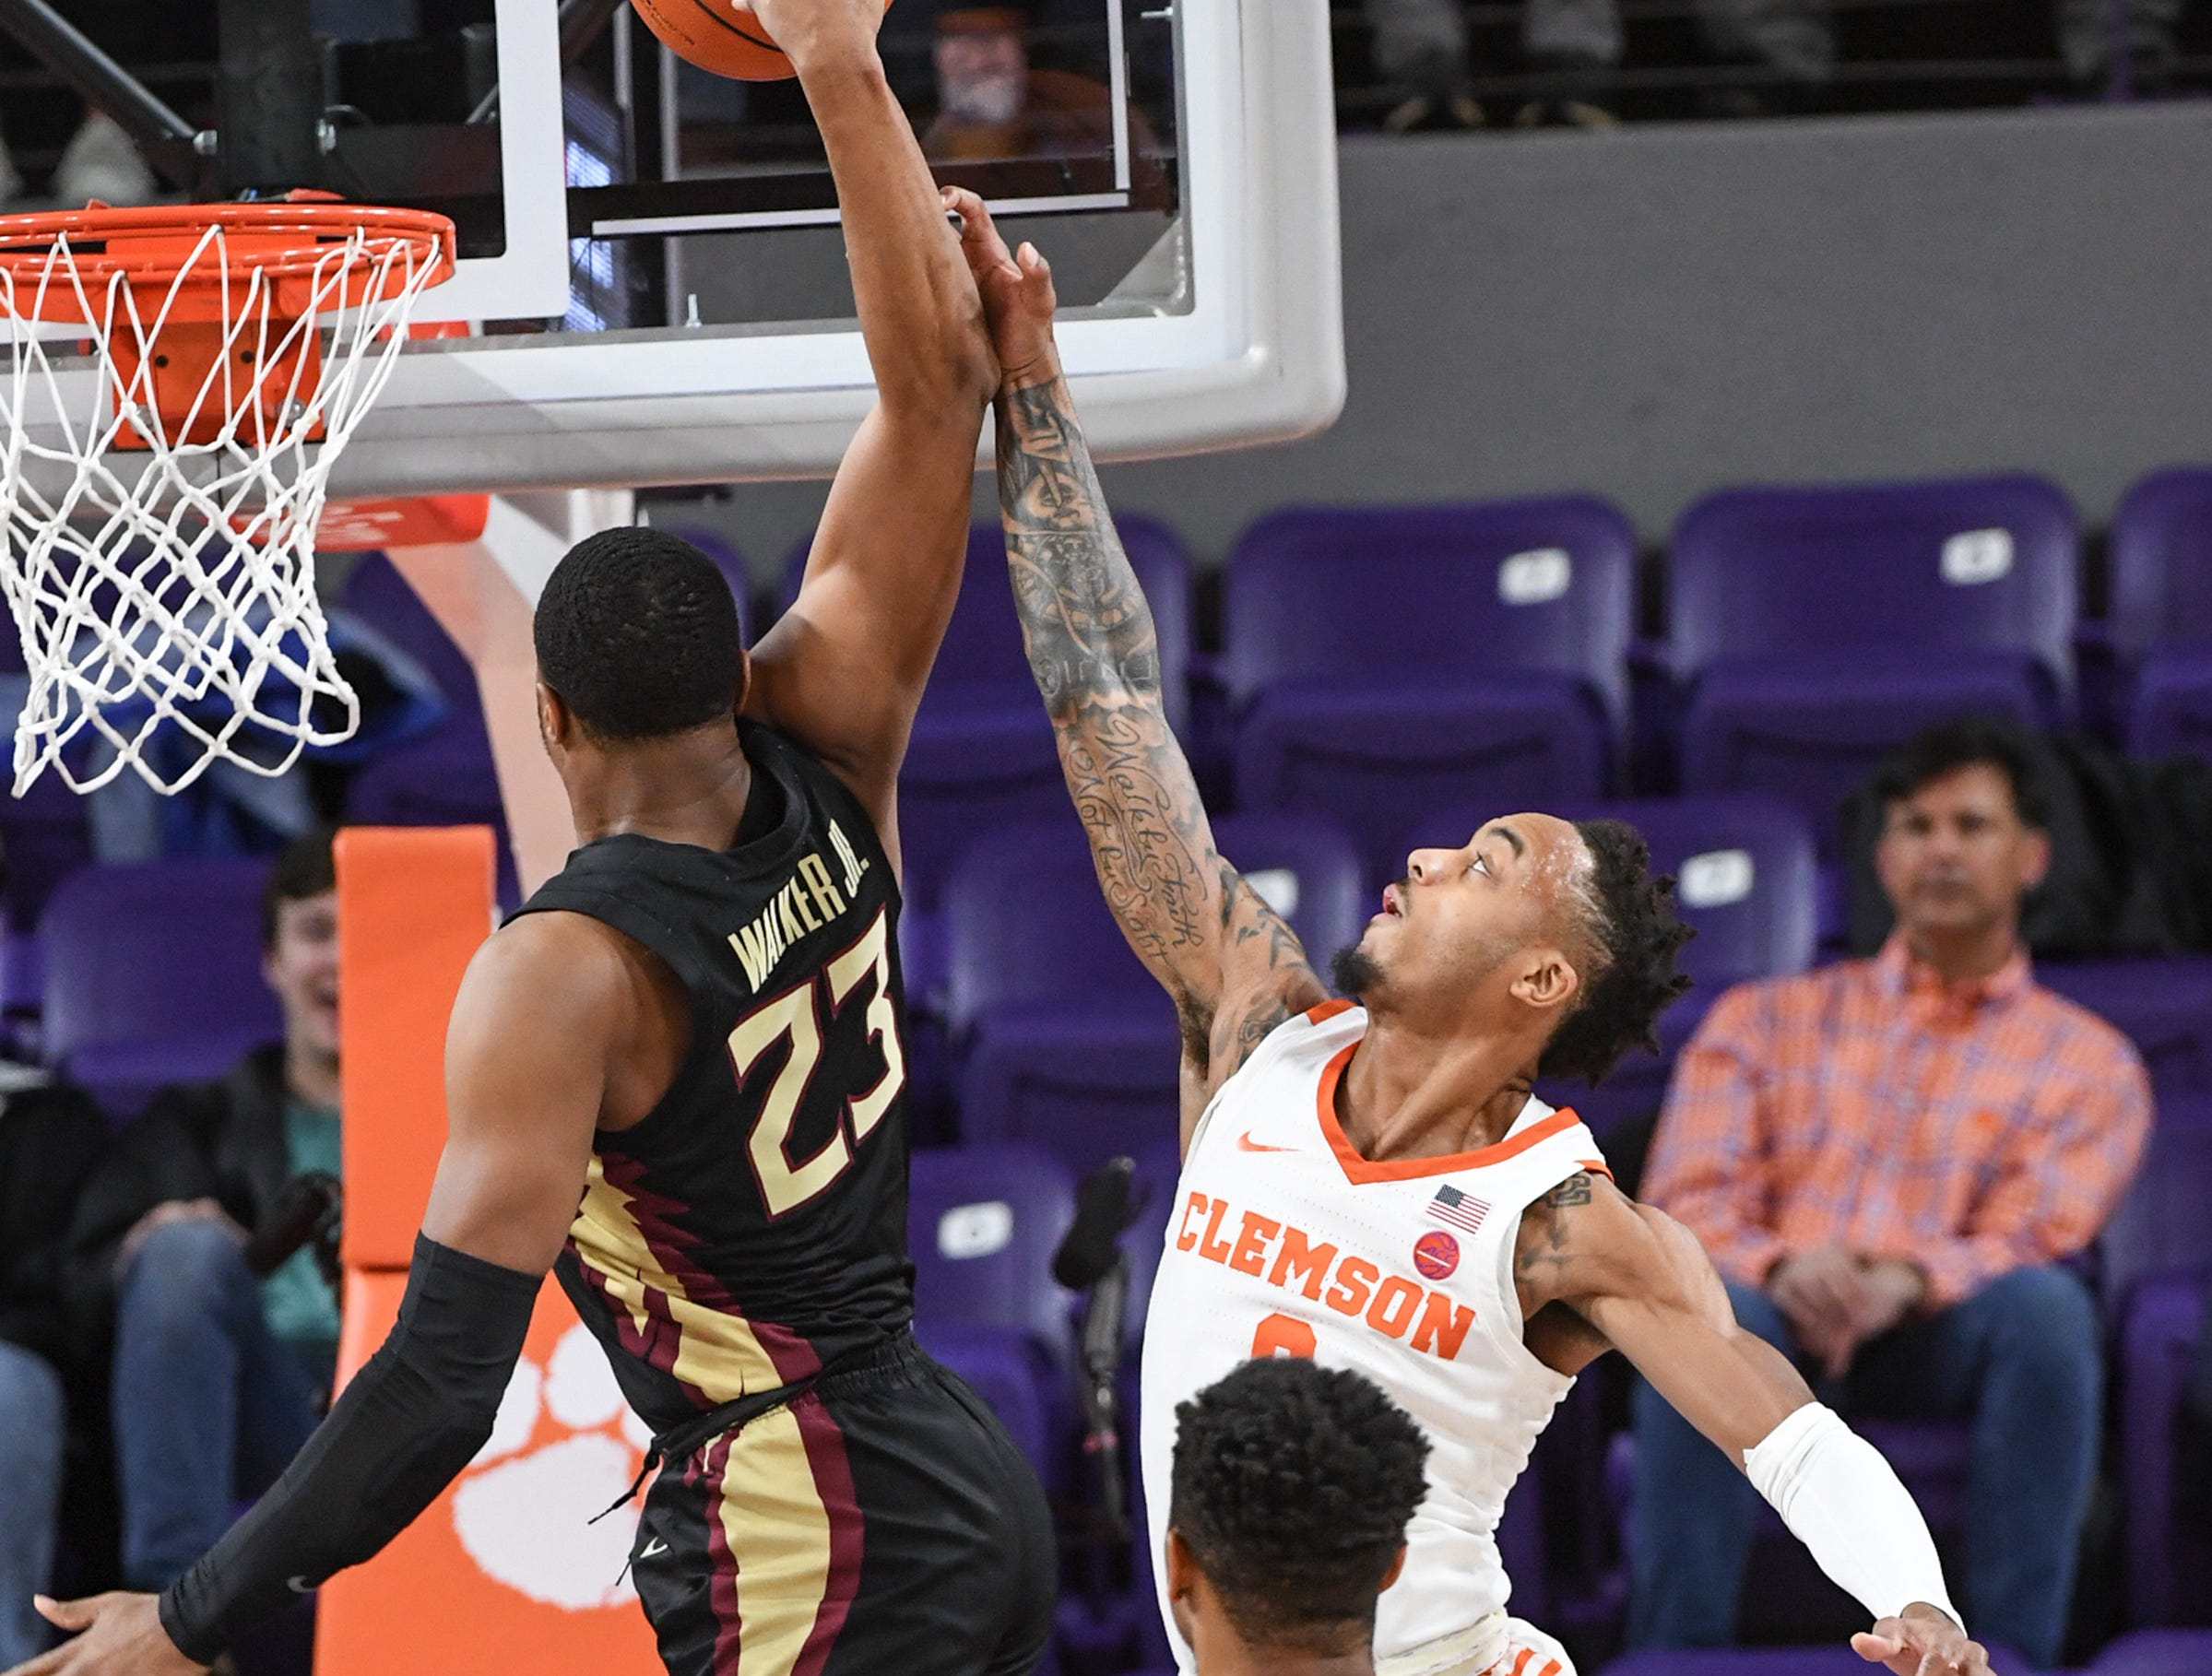 Clemson guard Marcquise Reed (2) defends Florida State guard M.J. Walker(23) during the first half at Littlejohn Coliseum in Clemson Tuesday, February 19, 2019.